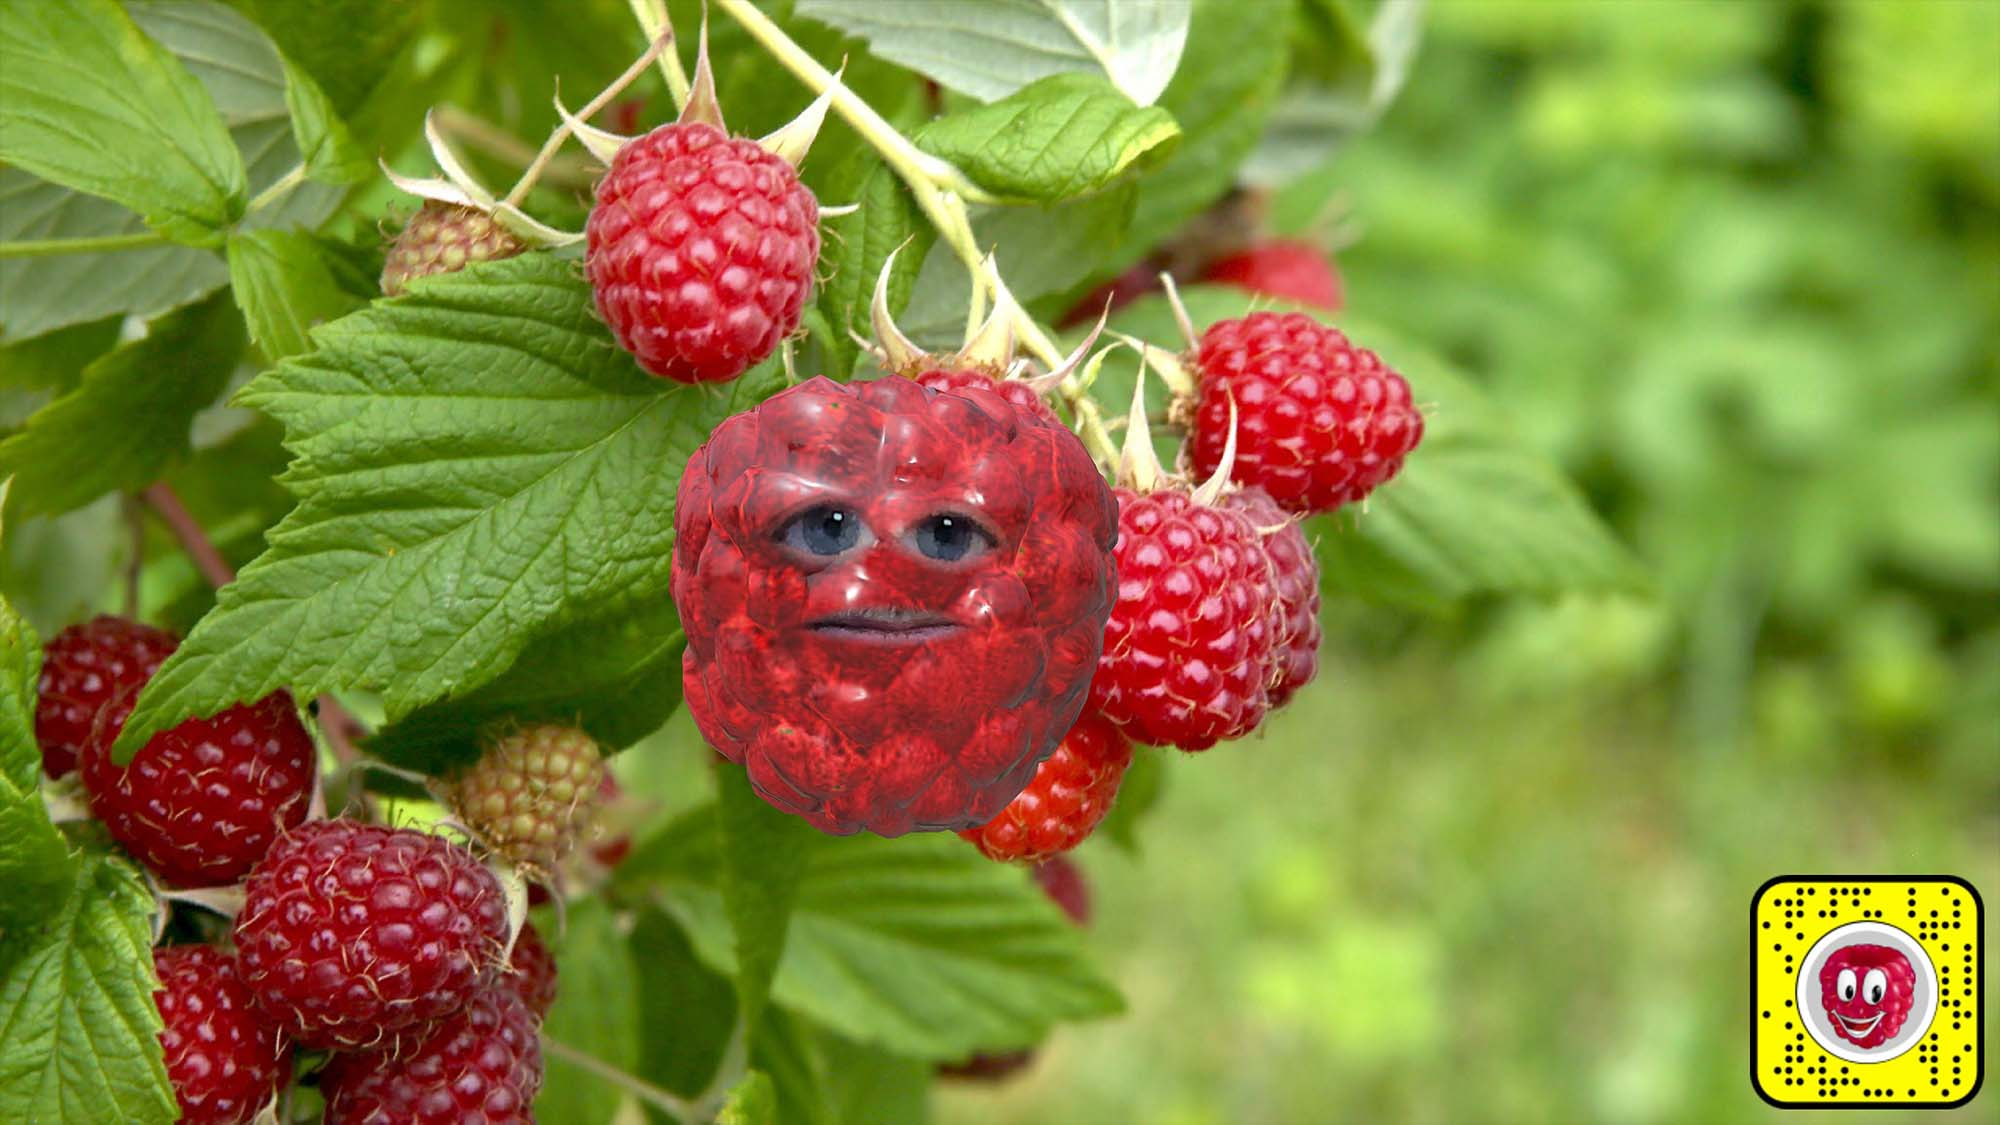 Snap Camera filter lens for being a raspberry on a bush